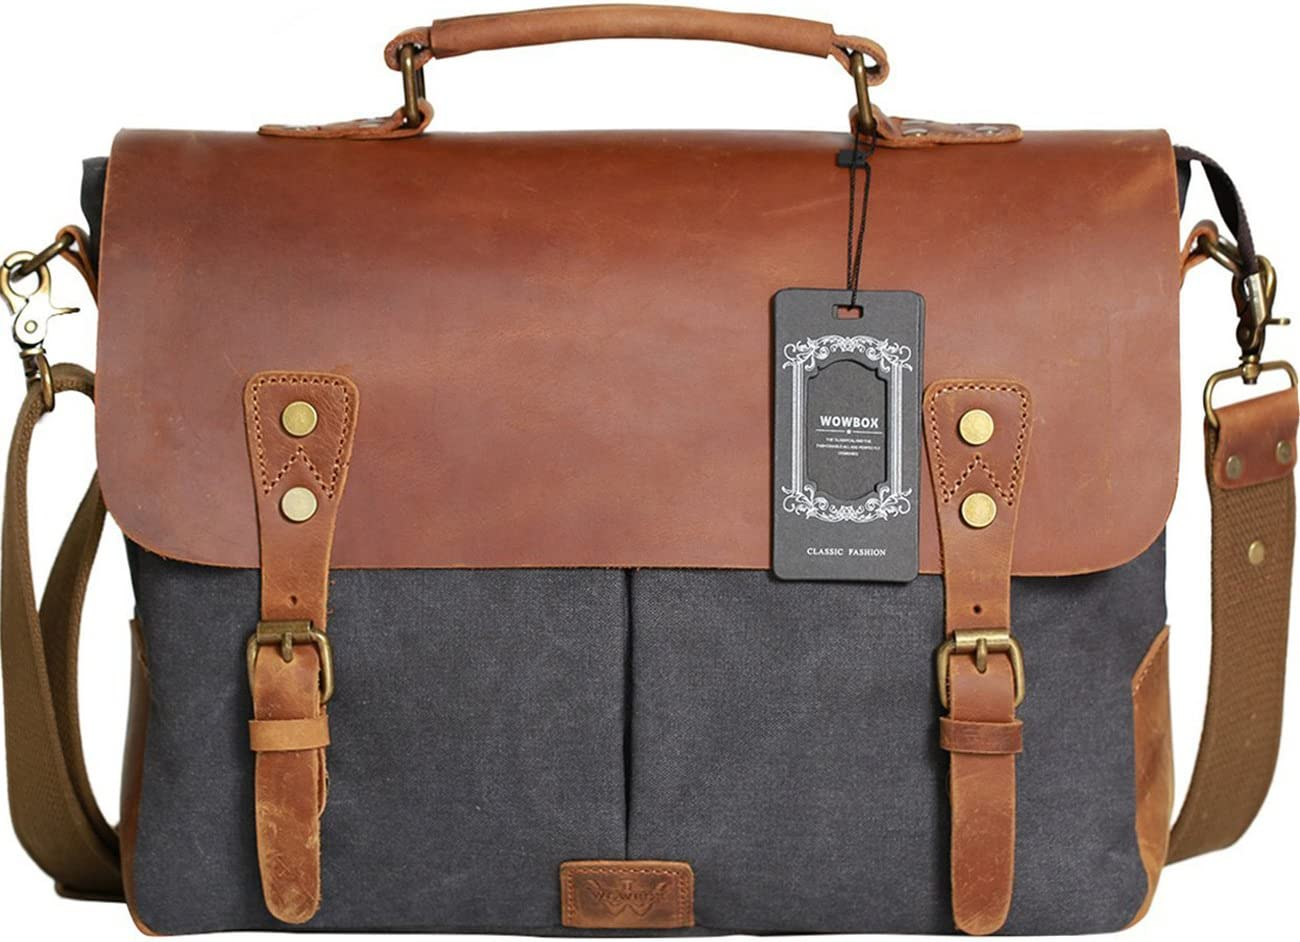 "Wowbox Messenger Satchel Bag for Men and Women,Vintage Canvas Real Leather 14-inch Laptop Briefcase for Everday use 13""(L) x10.5(H) x 4.1""(W)(Gray)"